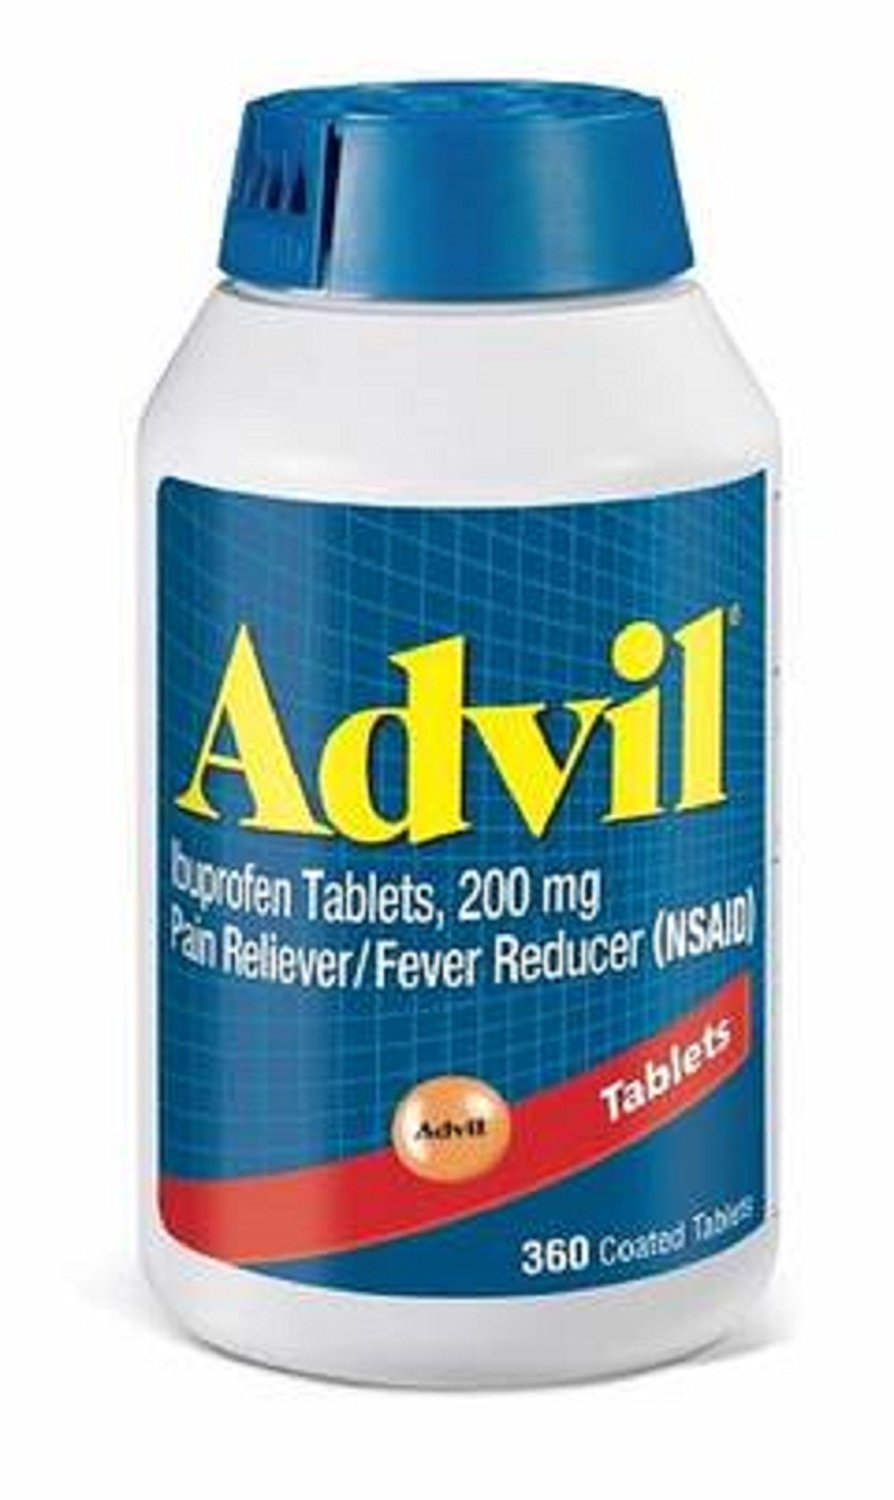 Advil Pain Reliever/Fever Reducer, 200mg Ibuprofen